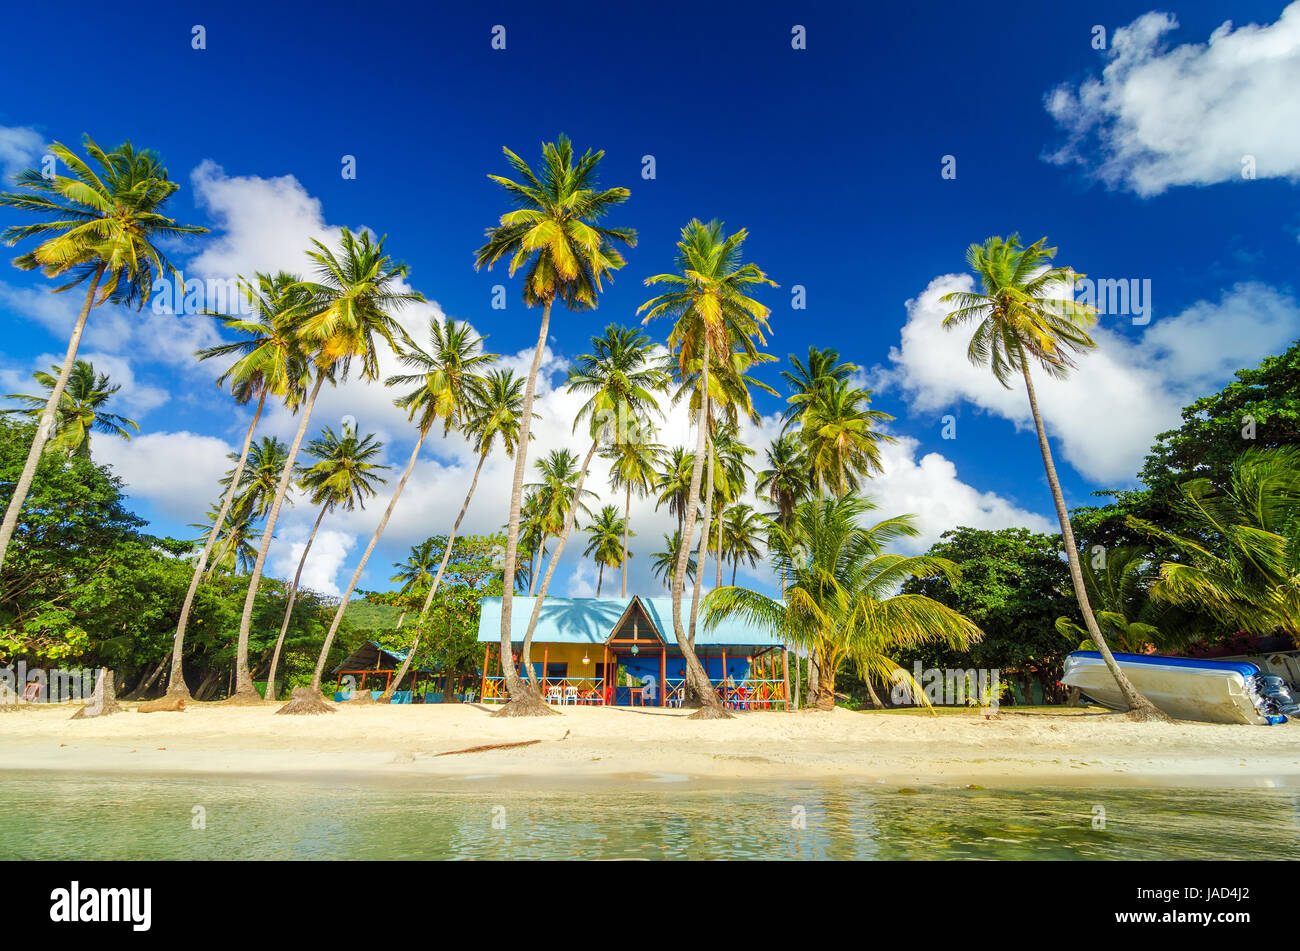 Colorful shack on a beach surrounded by palm trees in San Andres y ...